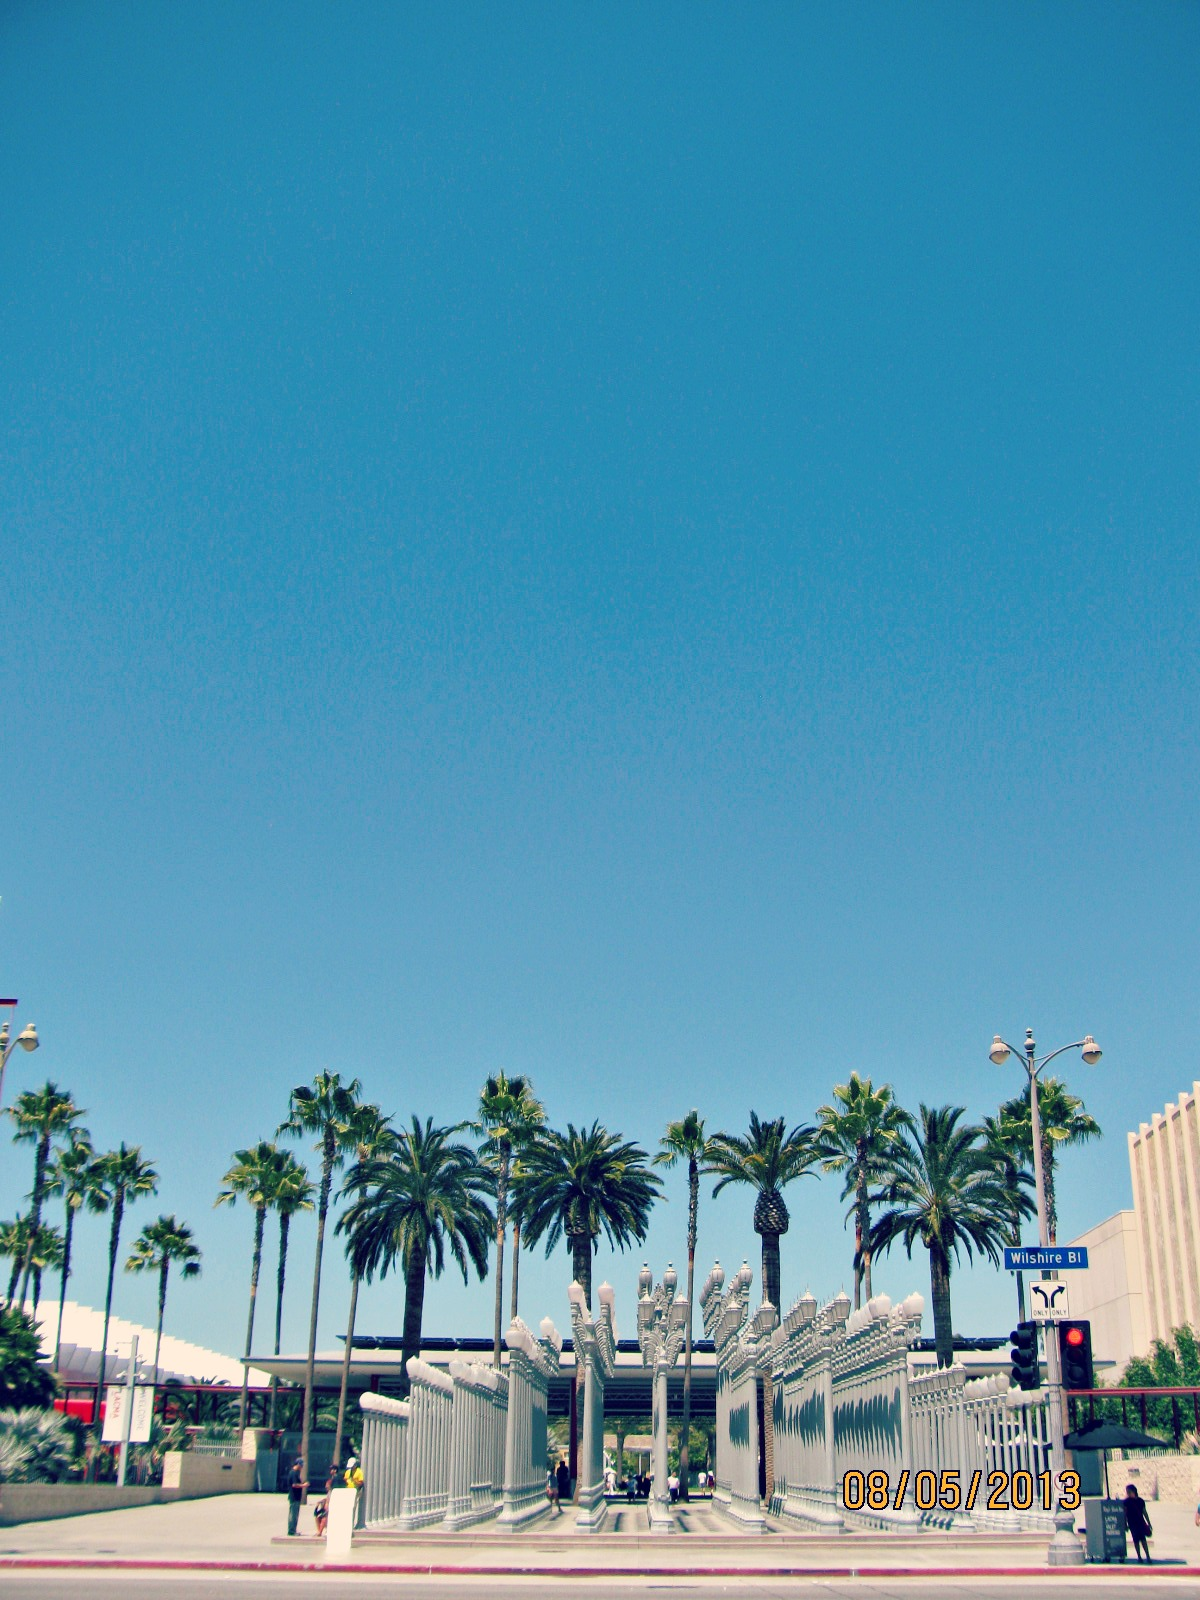 LACMA // Urban Light in the Summertime